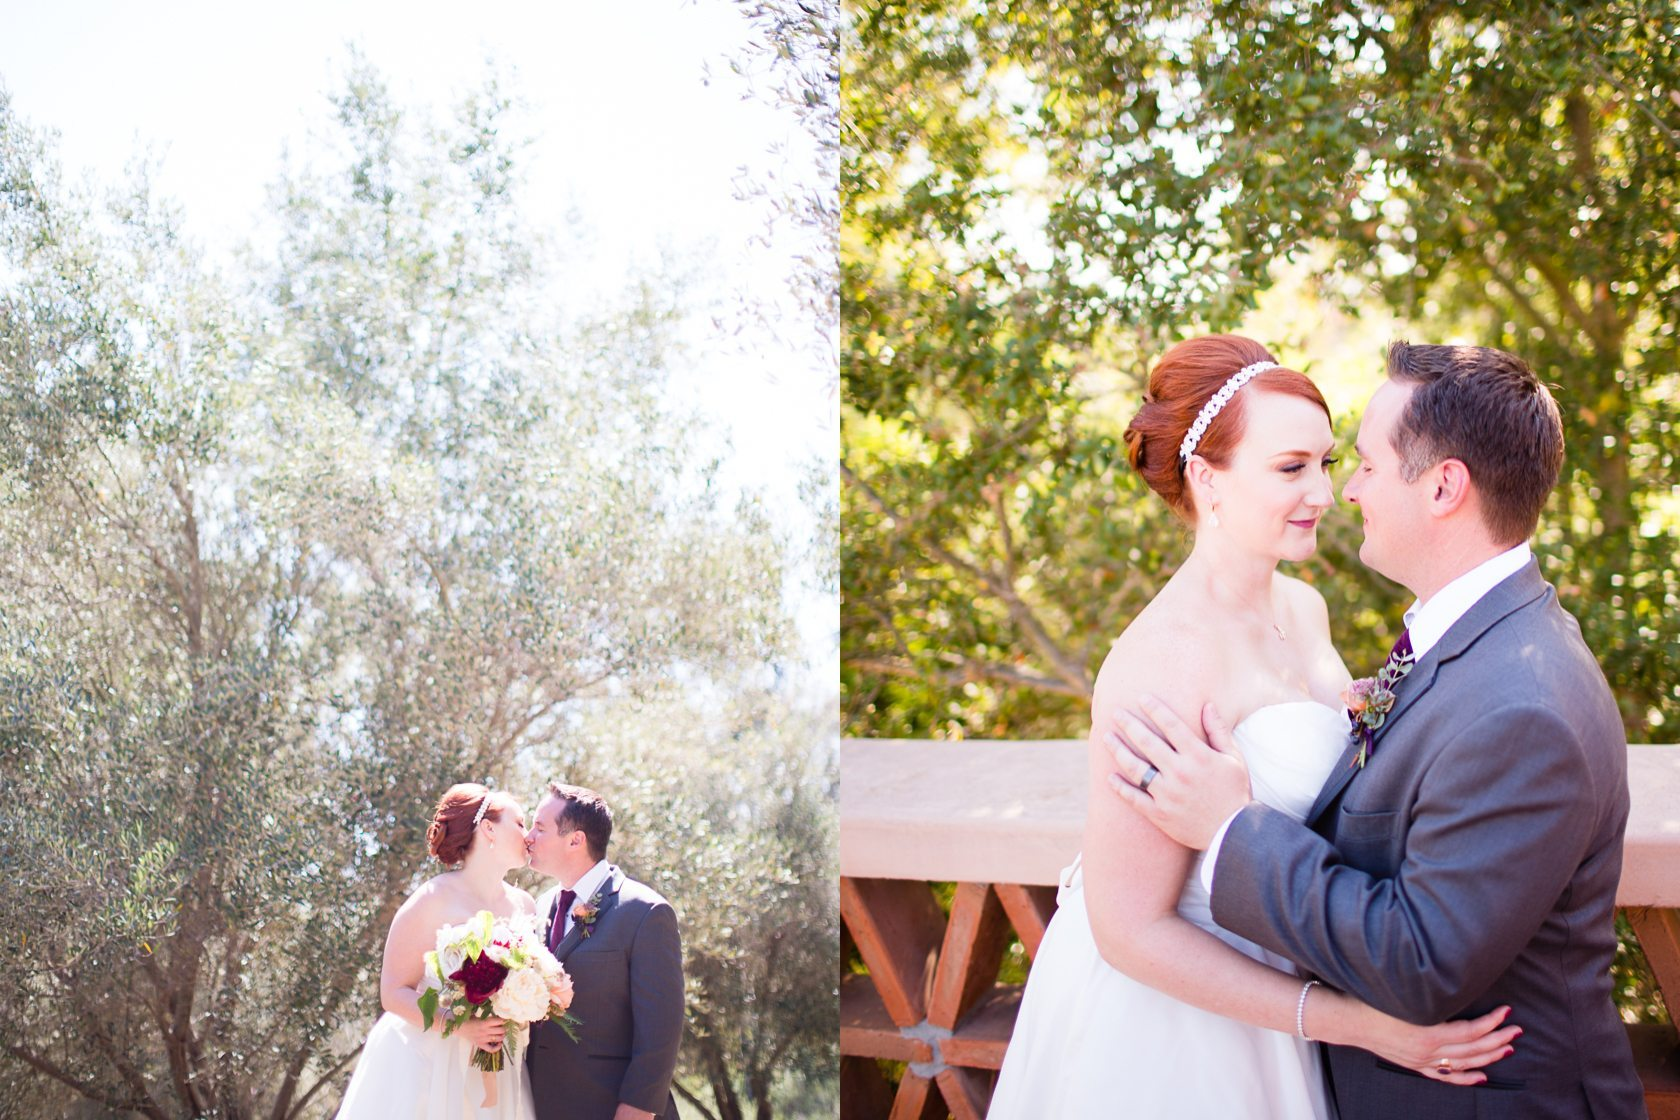 Elegant_Rancho_Valencia_Wedding_036.jpg